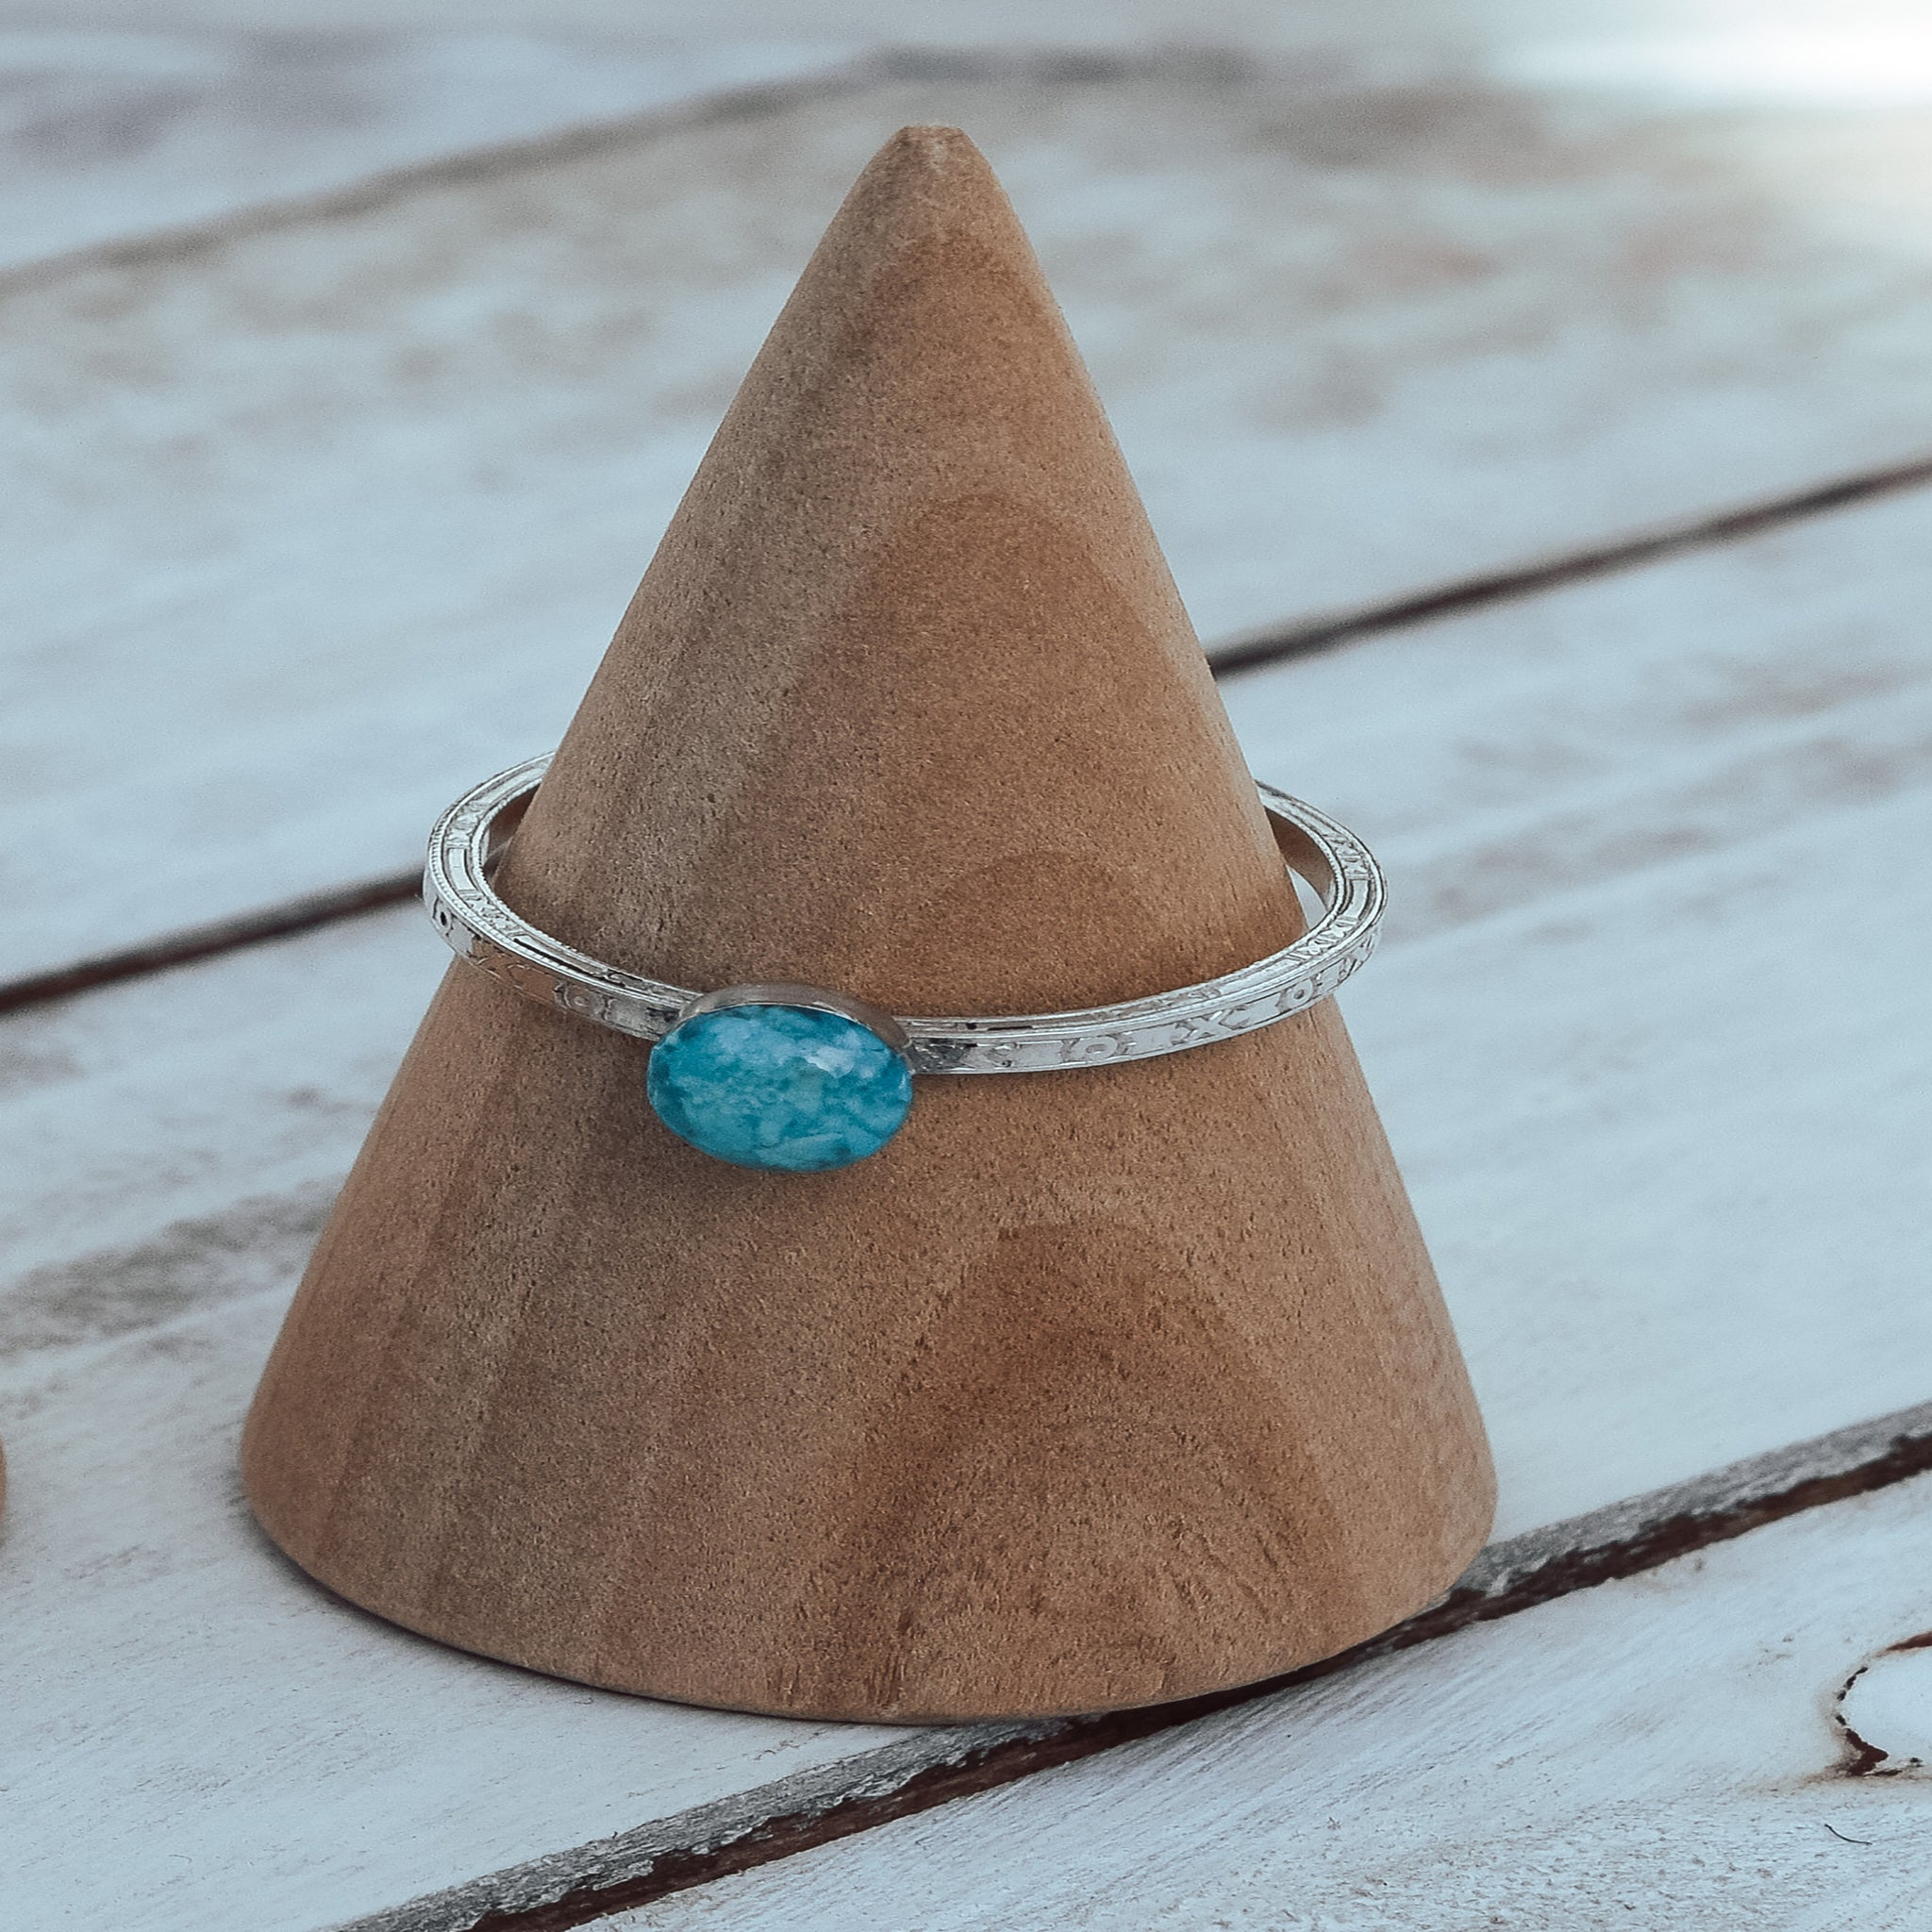 Turquoise Solitaire Ring